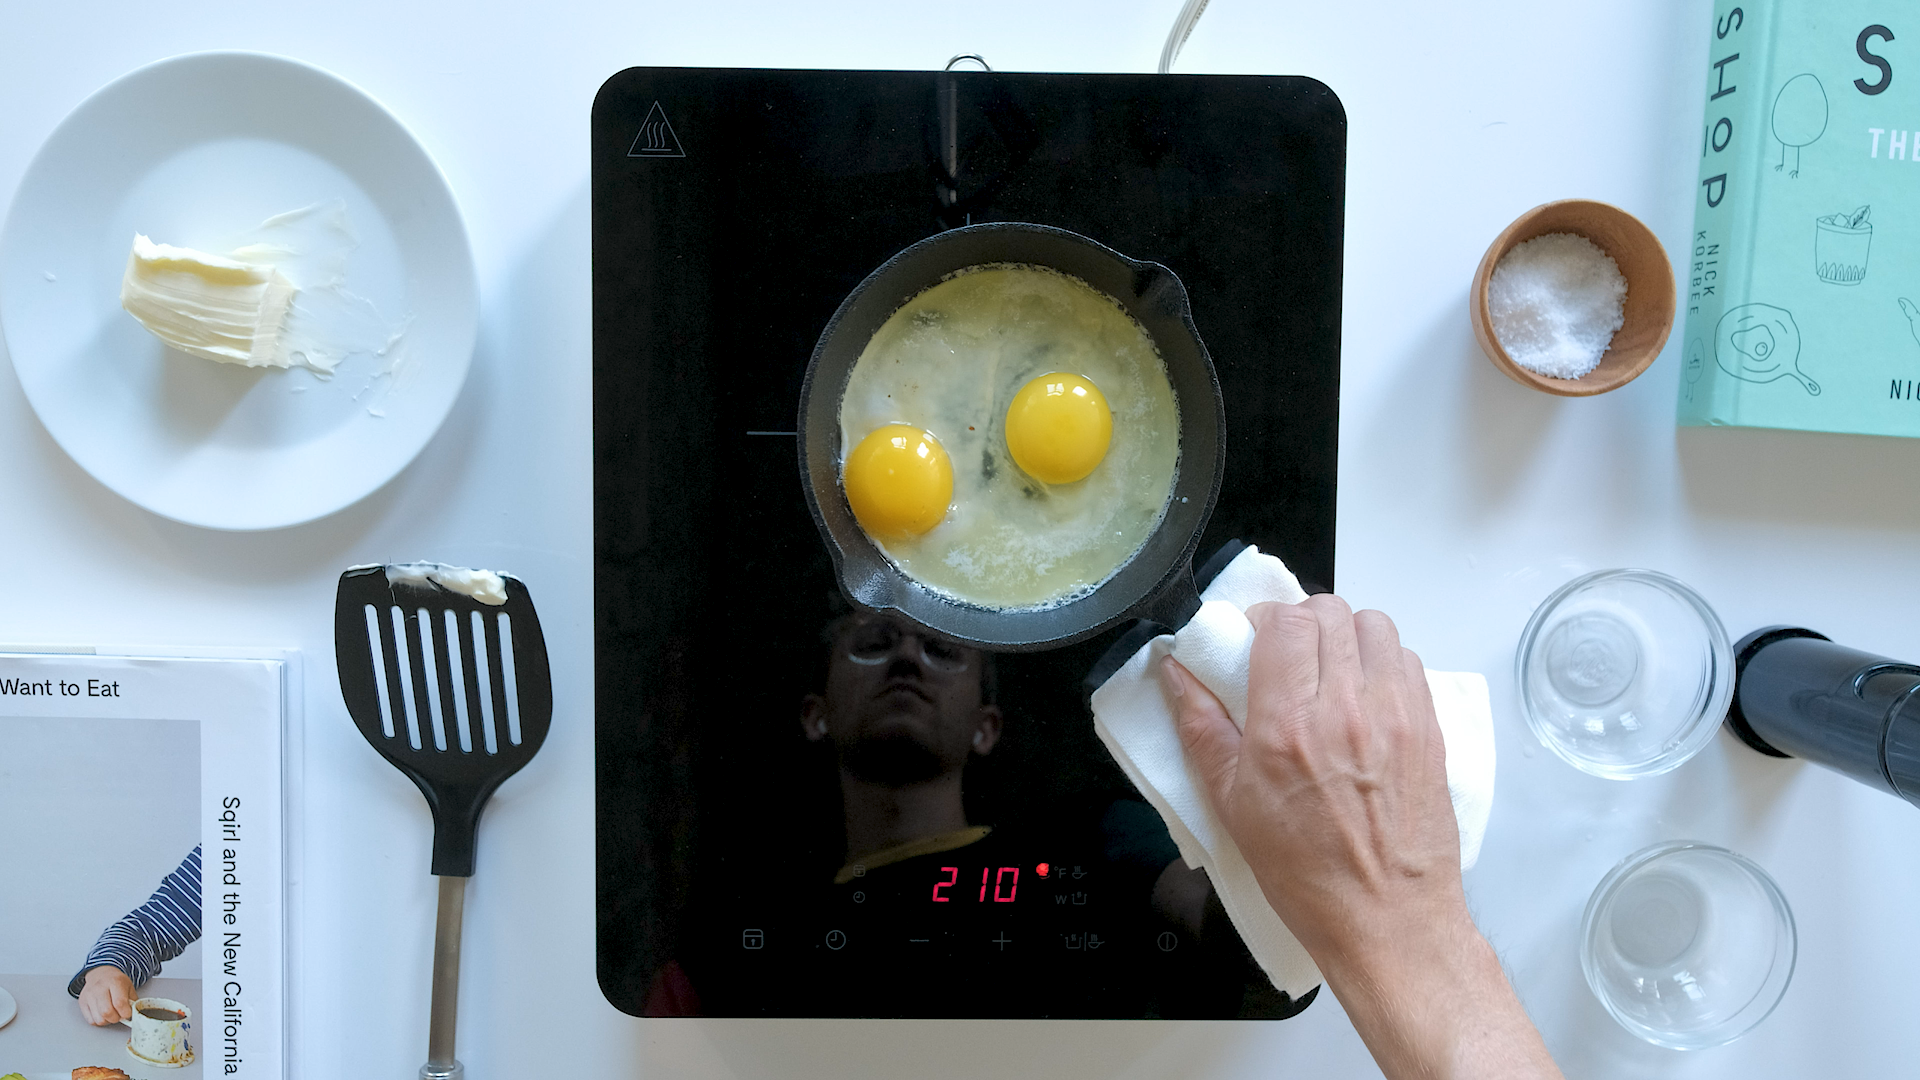 Sunny side up eggs, take them to the oven.